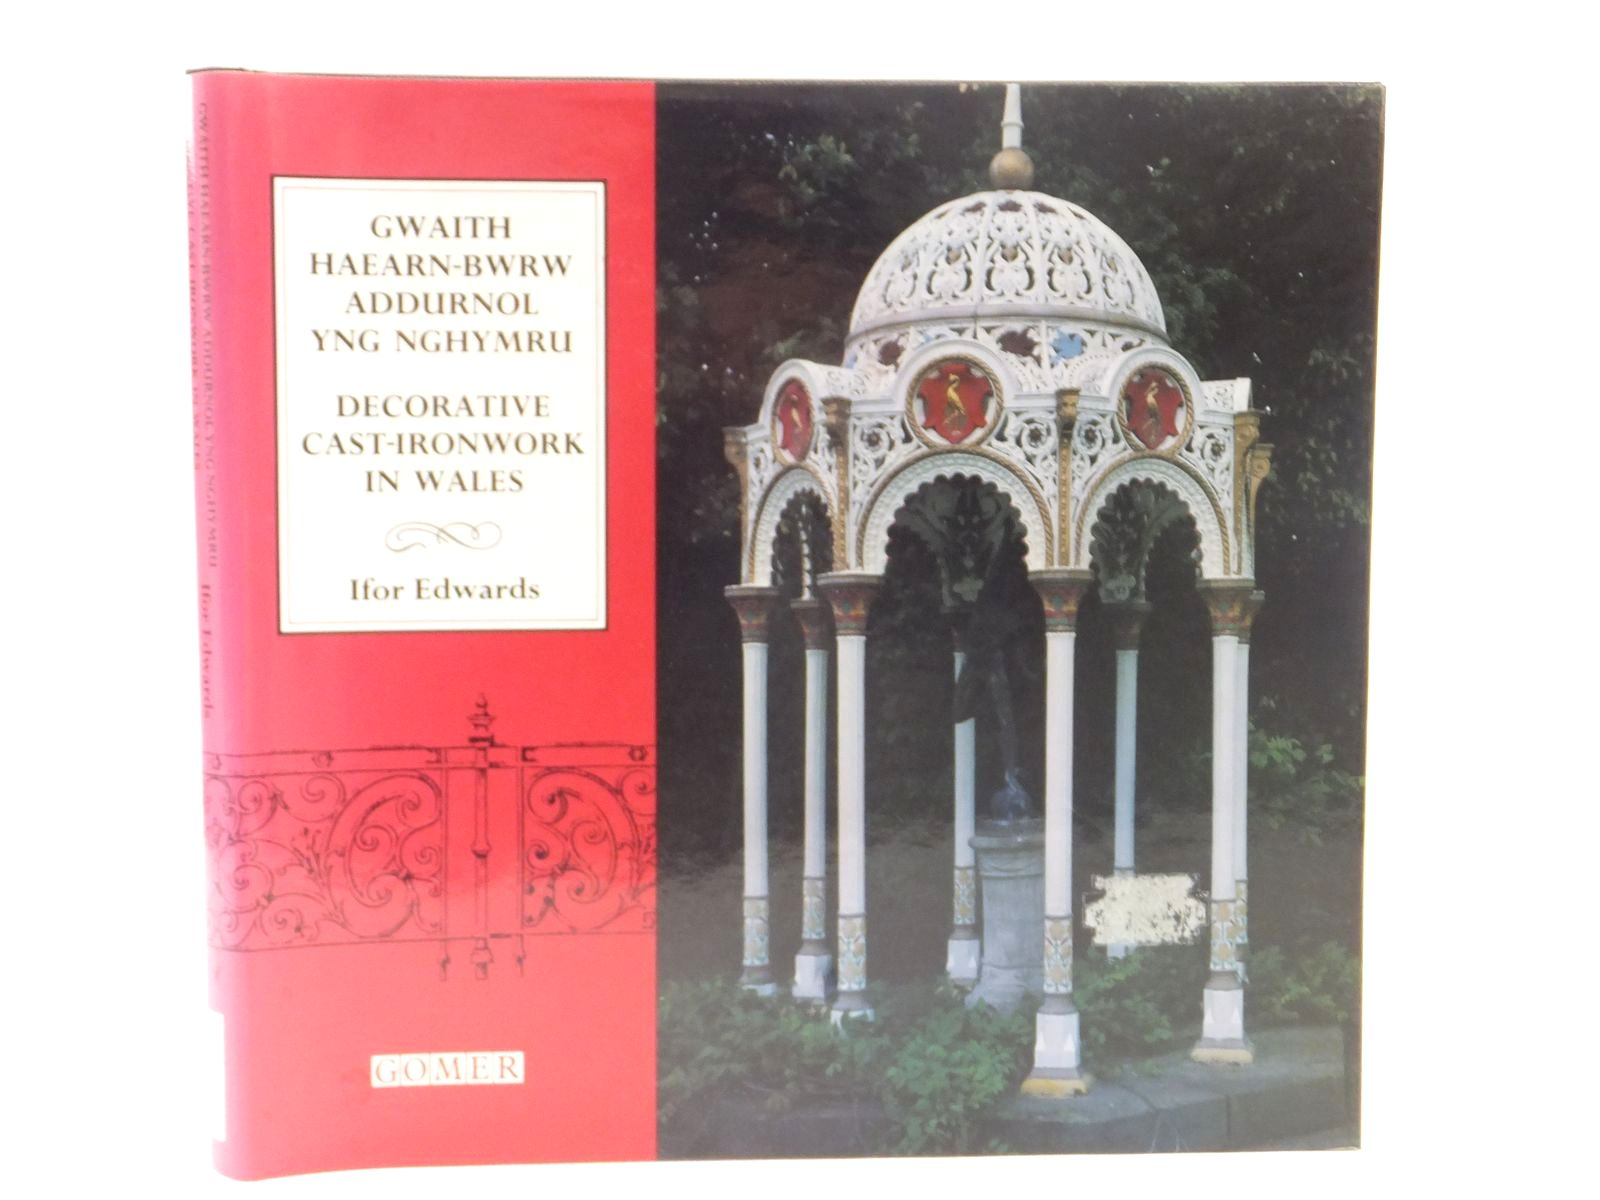 Photo of GWAITH HAEARN-BWRW ADDURNOL YNG NGHYMRU: DECORATIVE CAST-IRONWORK IN WALES written by Edwards, Ifor published by Gomer Press (STOCK CODE: 1815474)  for sale by Stella & Rose's Books